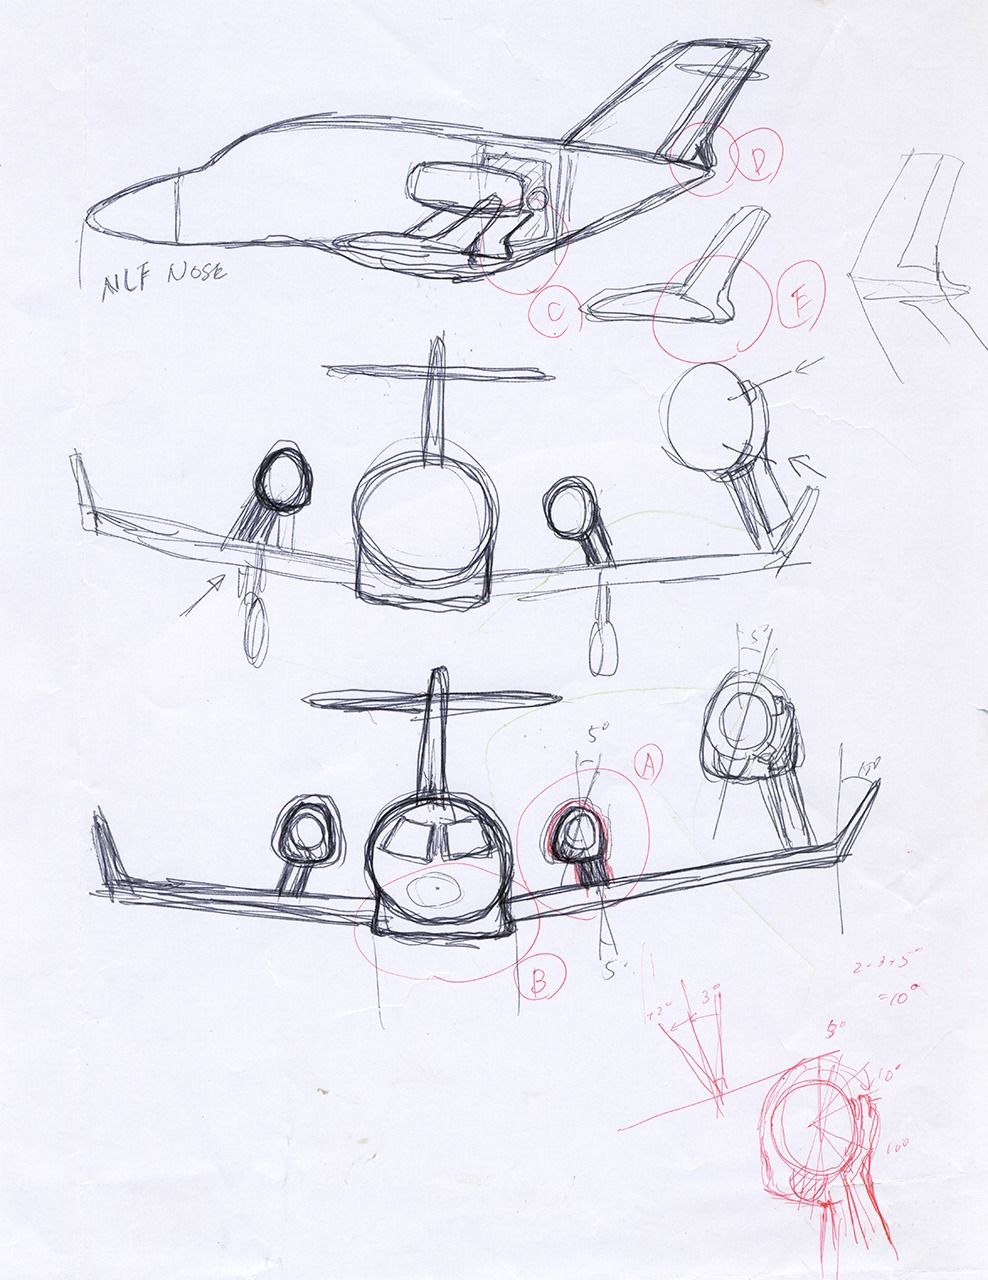 Fujino sketched his idea for the over-the-wing engine mount configuration on the back of a calendar. (Courtesy of Honda Aircraft Company)